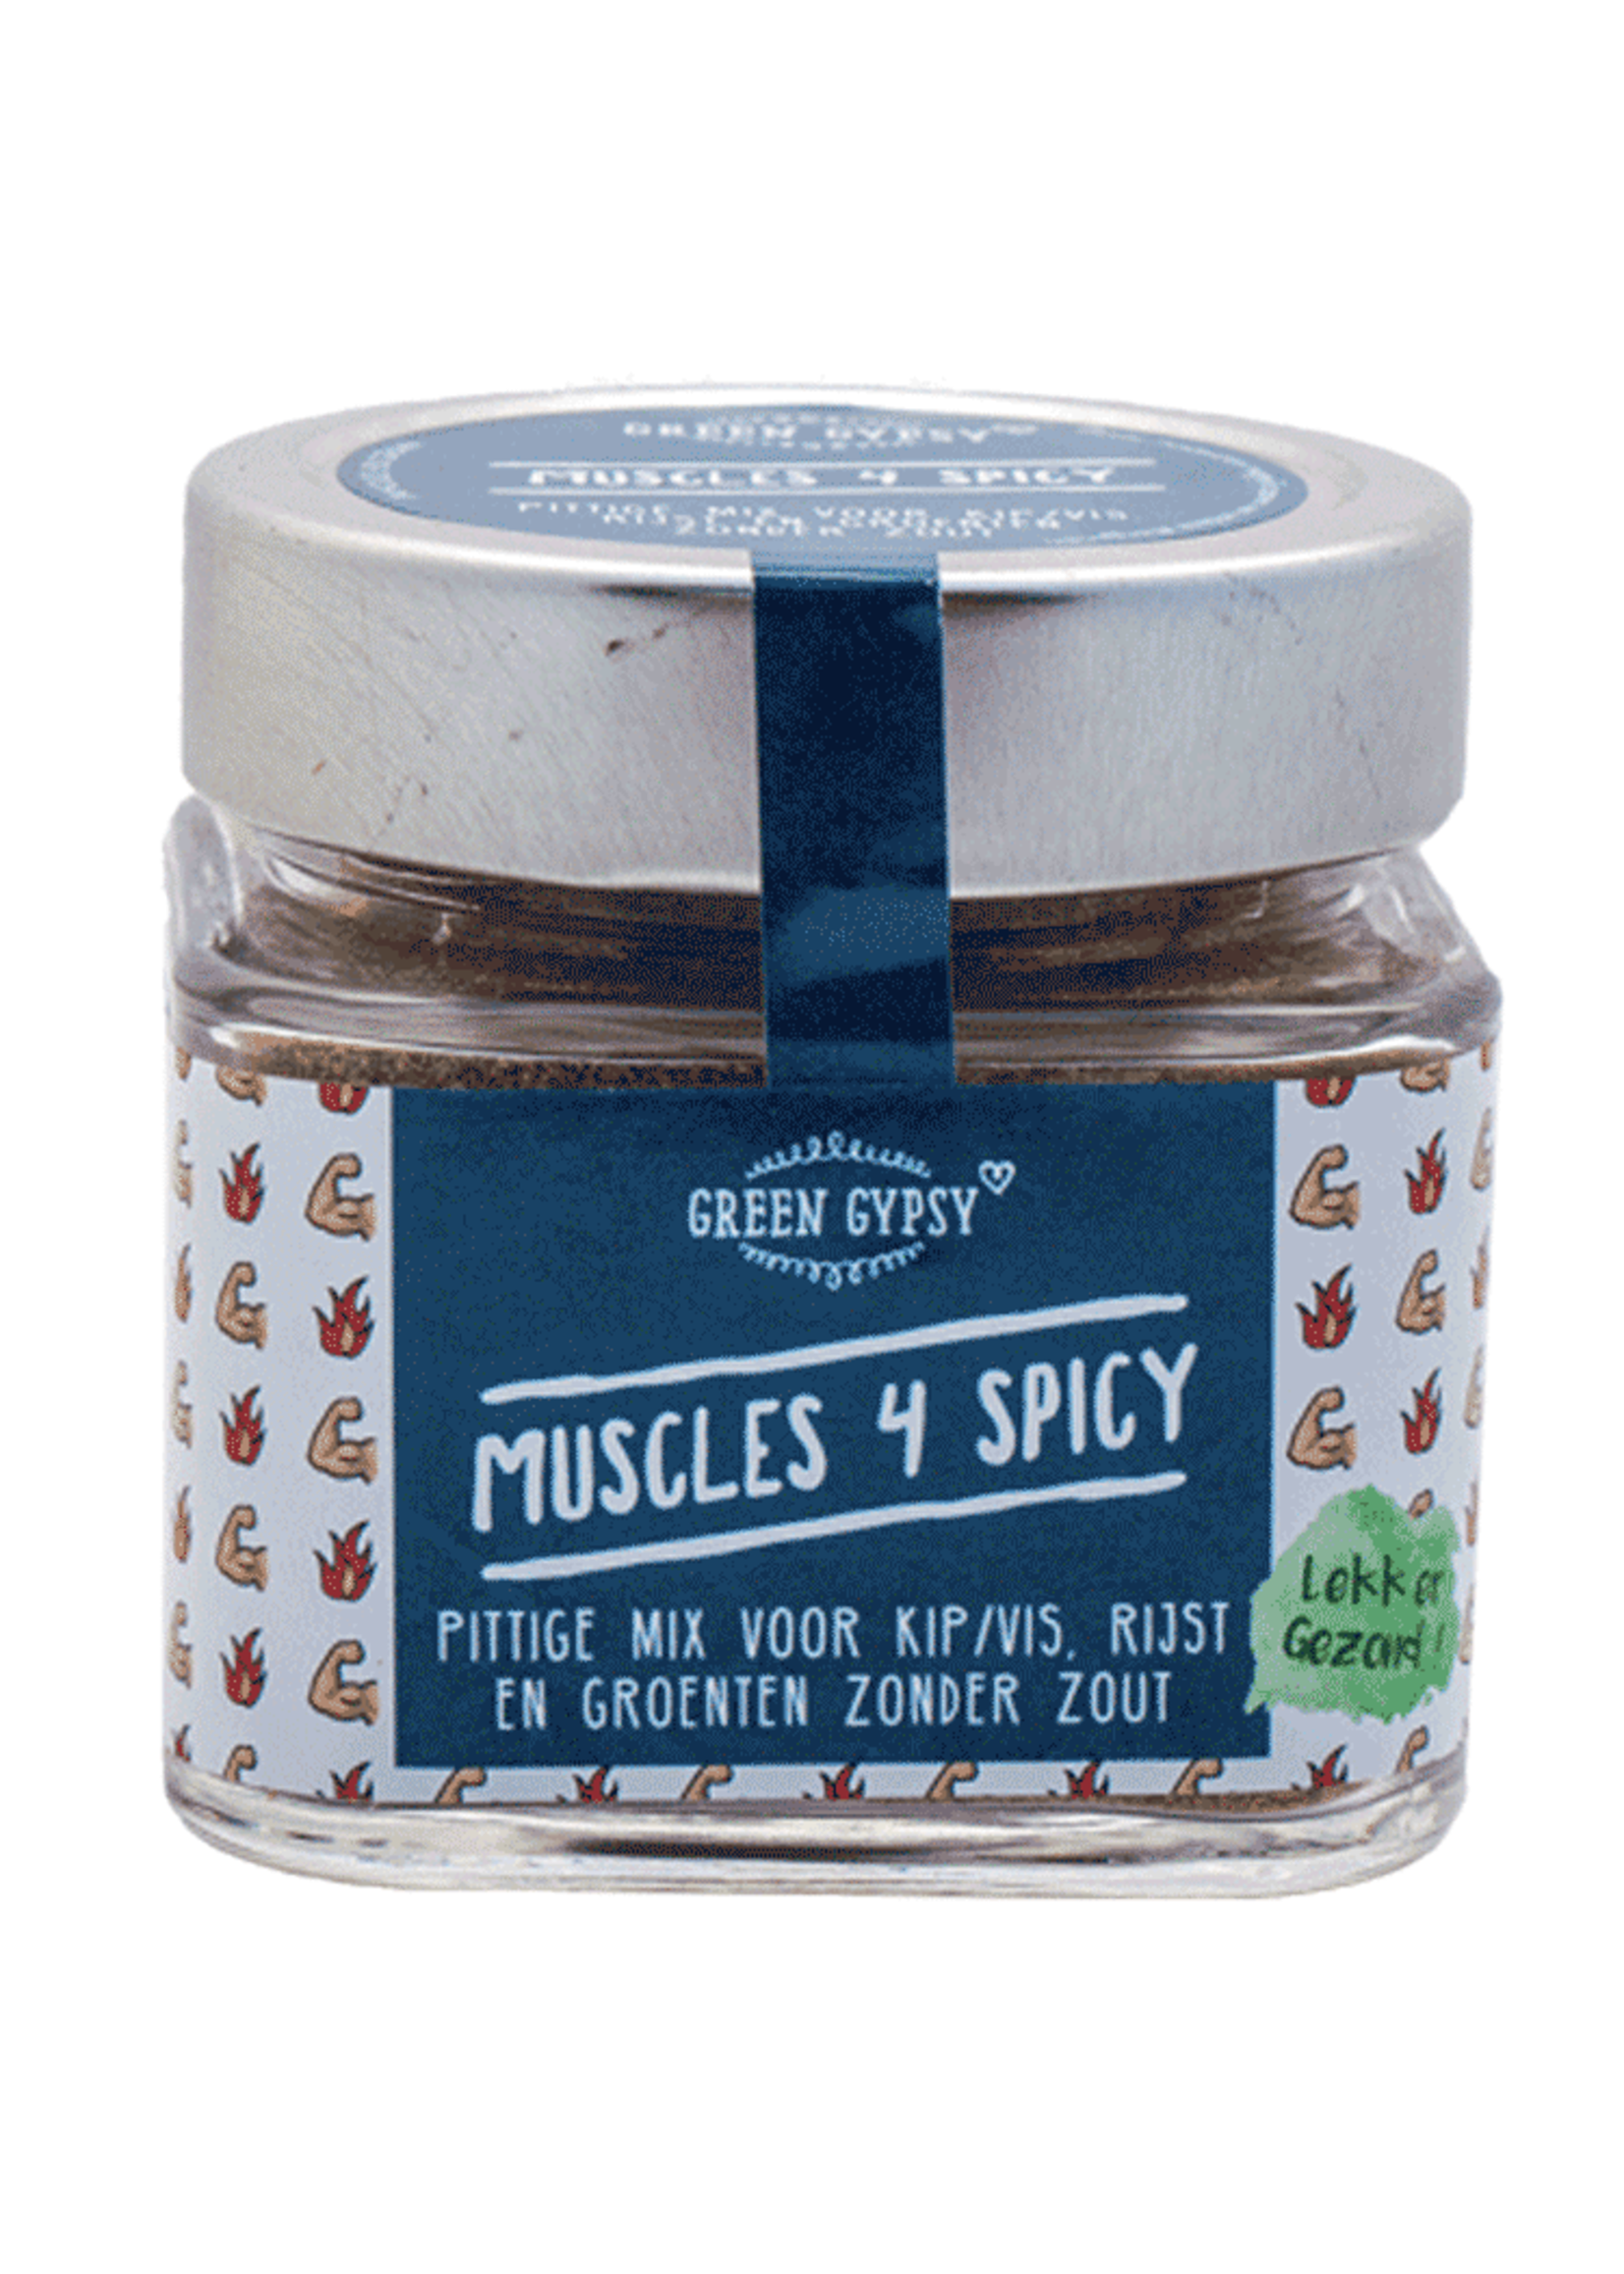 Green Gypsy Spices Kruidenmix Muscles 4 Spicy Green Gypsy